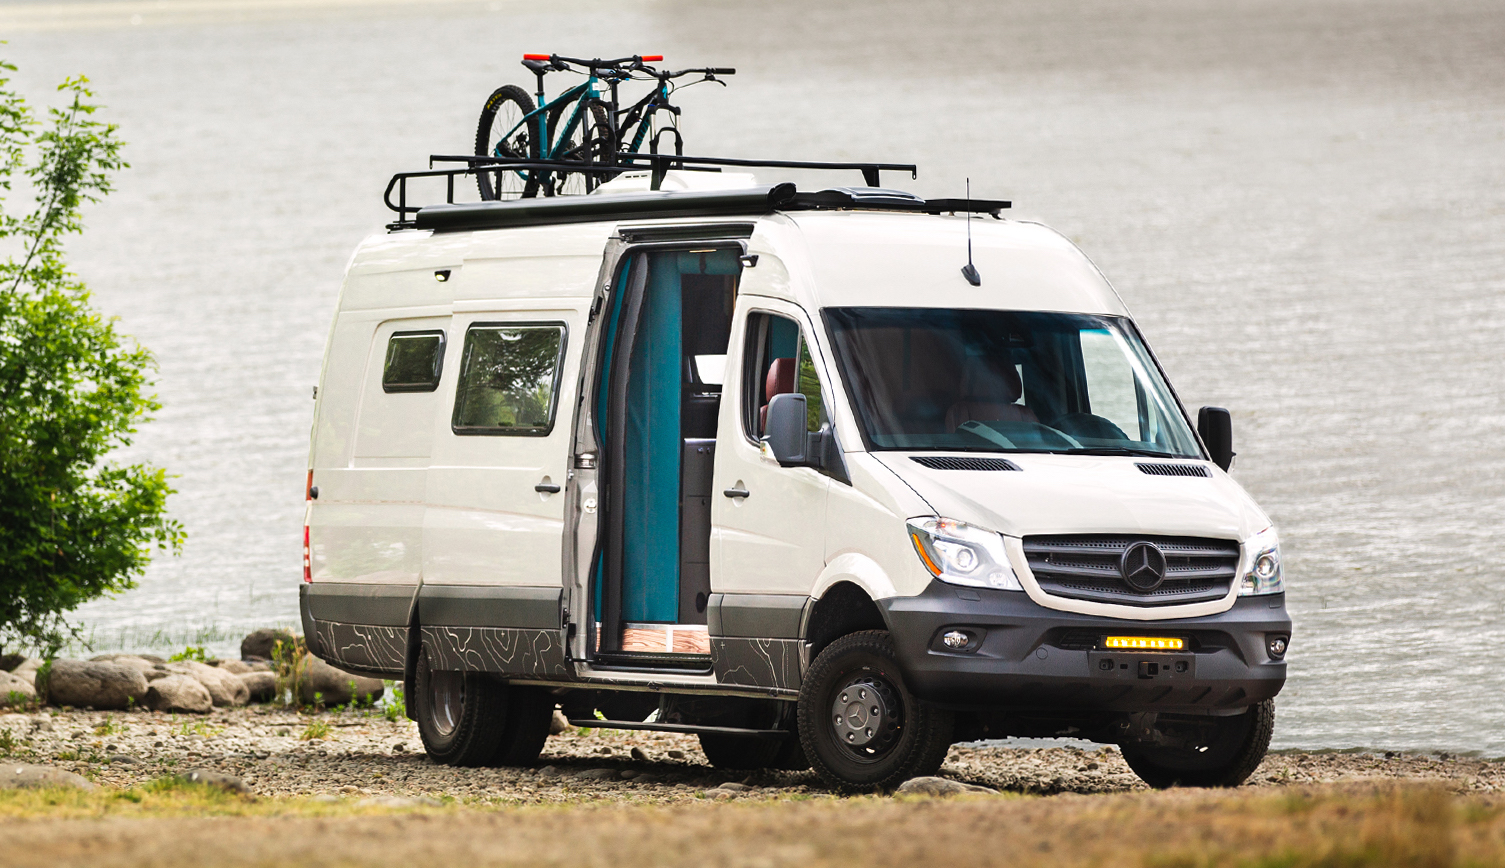 A white camper van sits on the banks of a lake. The camper van's side door is open and there is a roof rack with two bikes on top. Van life